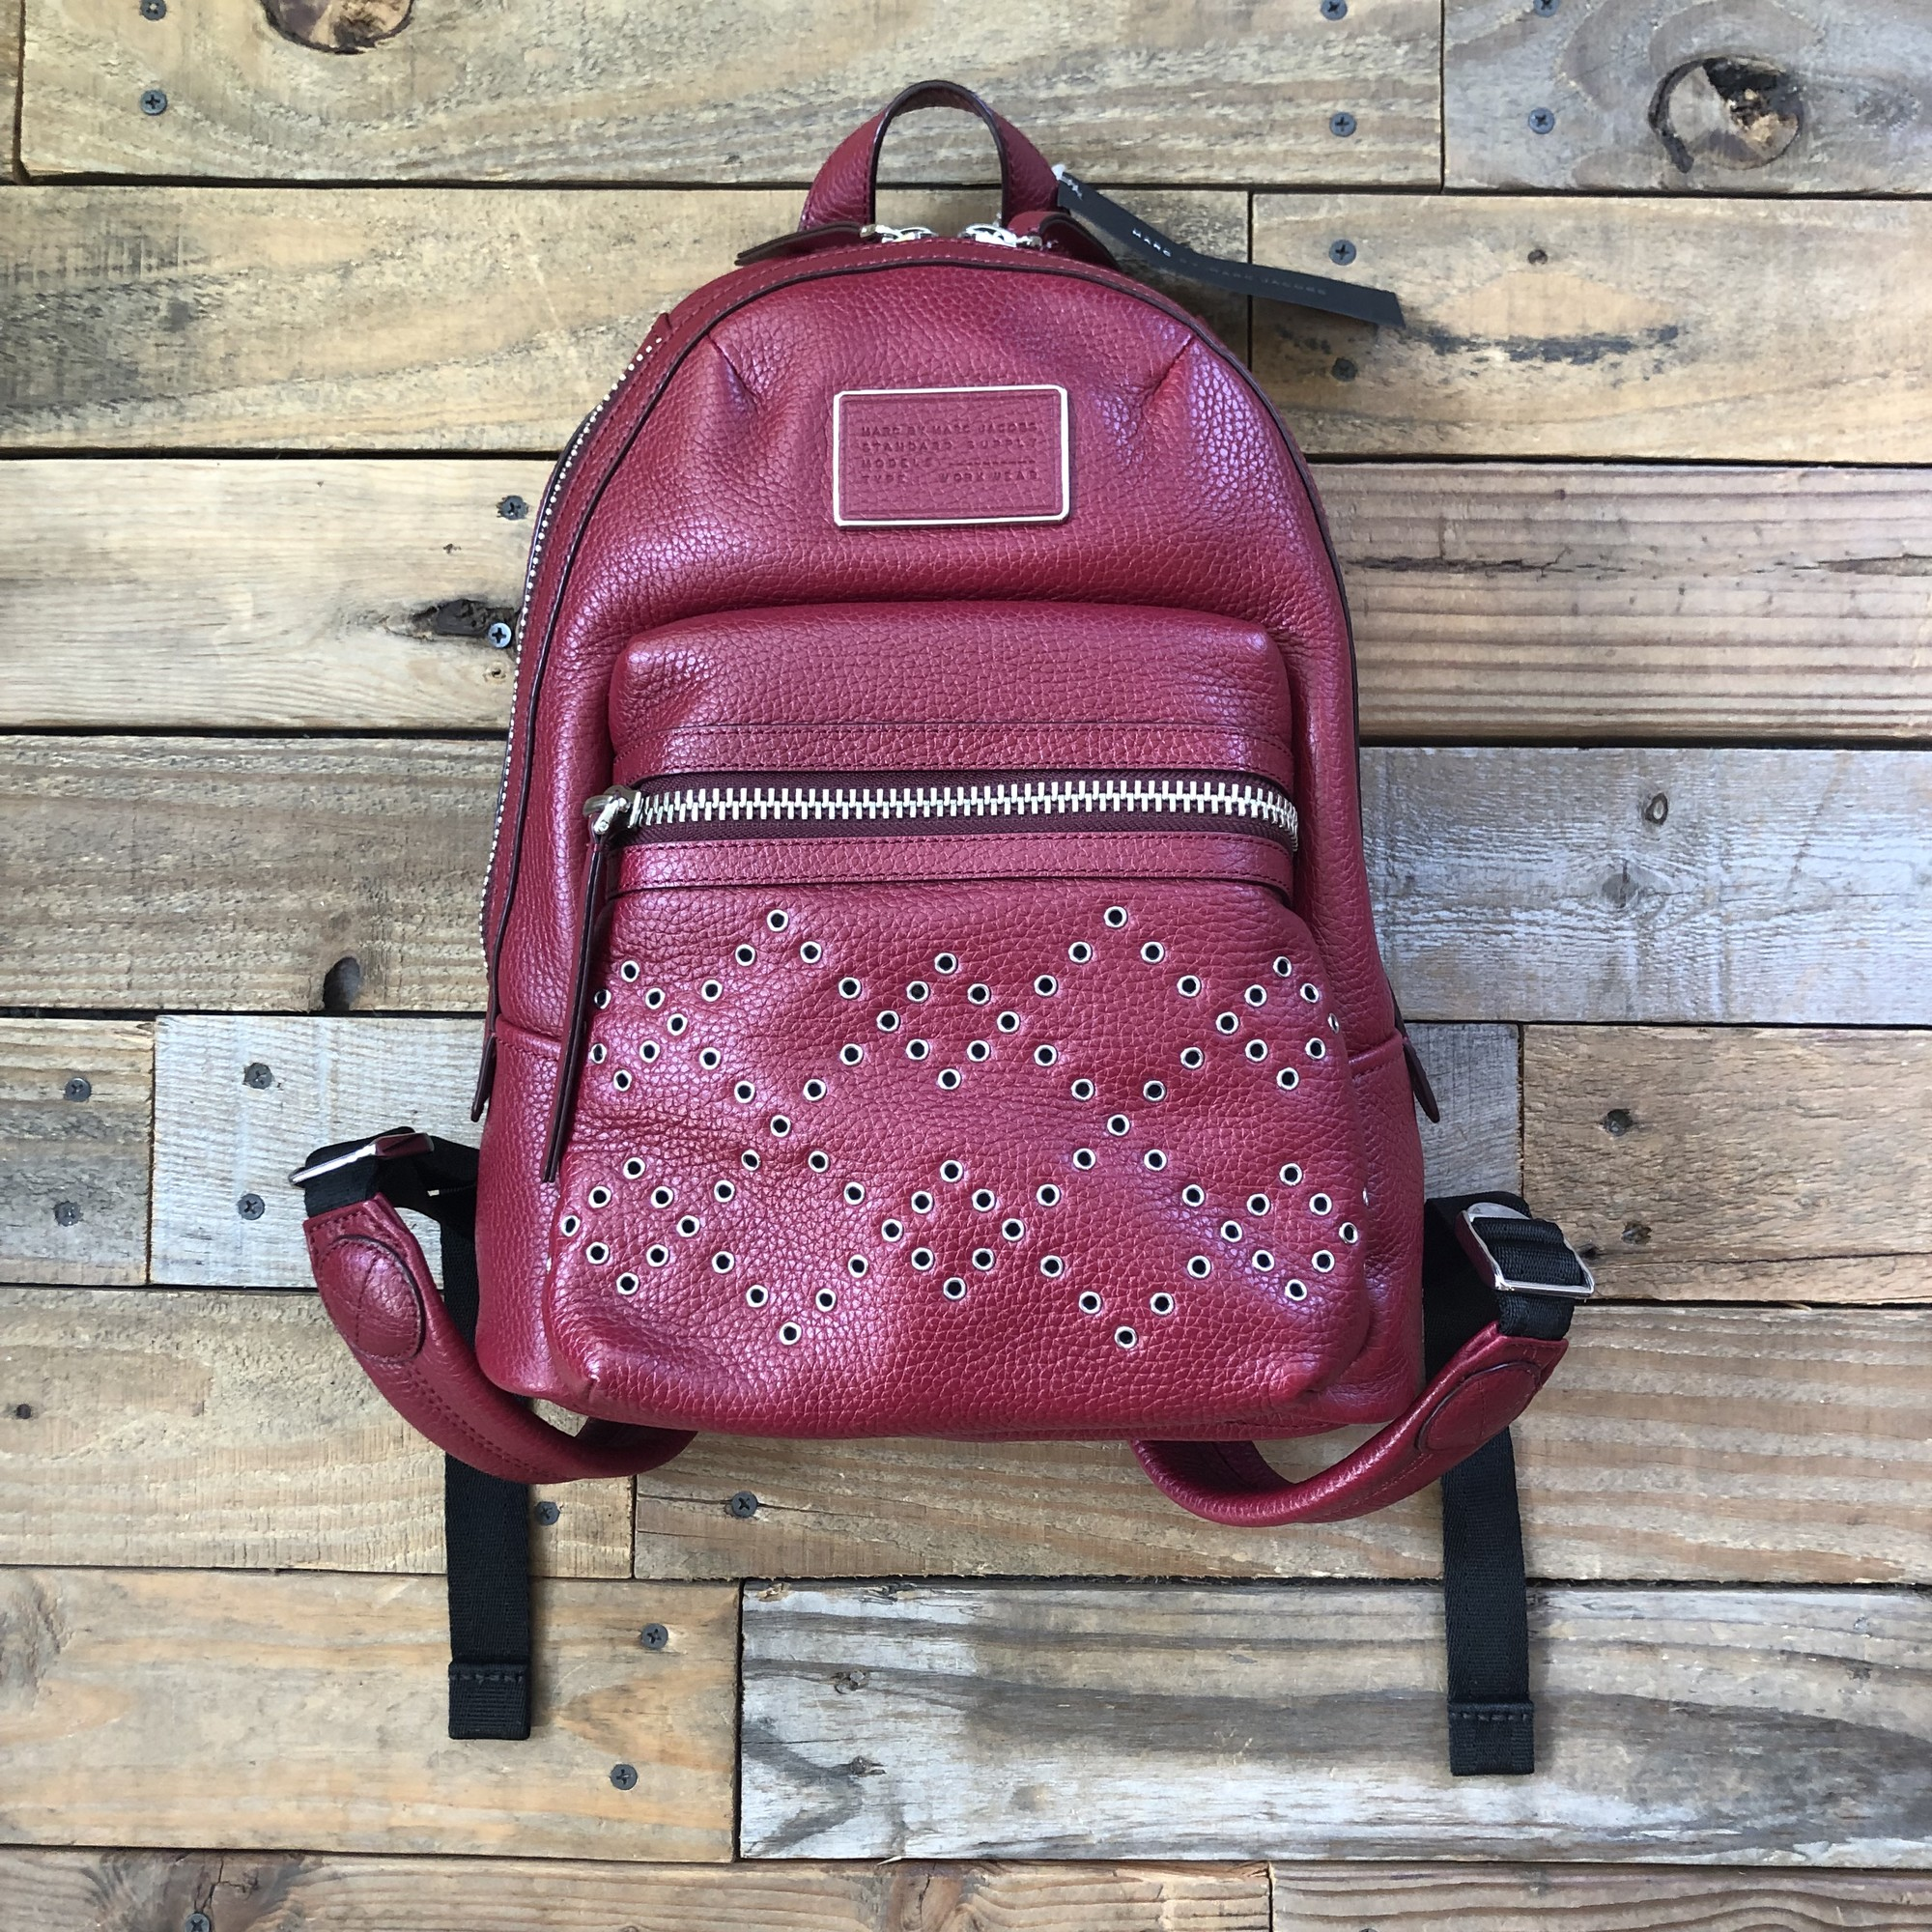 "Marc By Marc Jacobs Leather Grommet Backpack<br /> Color: Red<br /> Size: 12"" x 10"" x 5"""